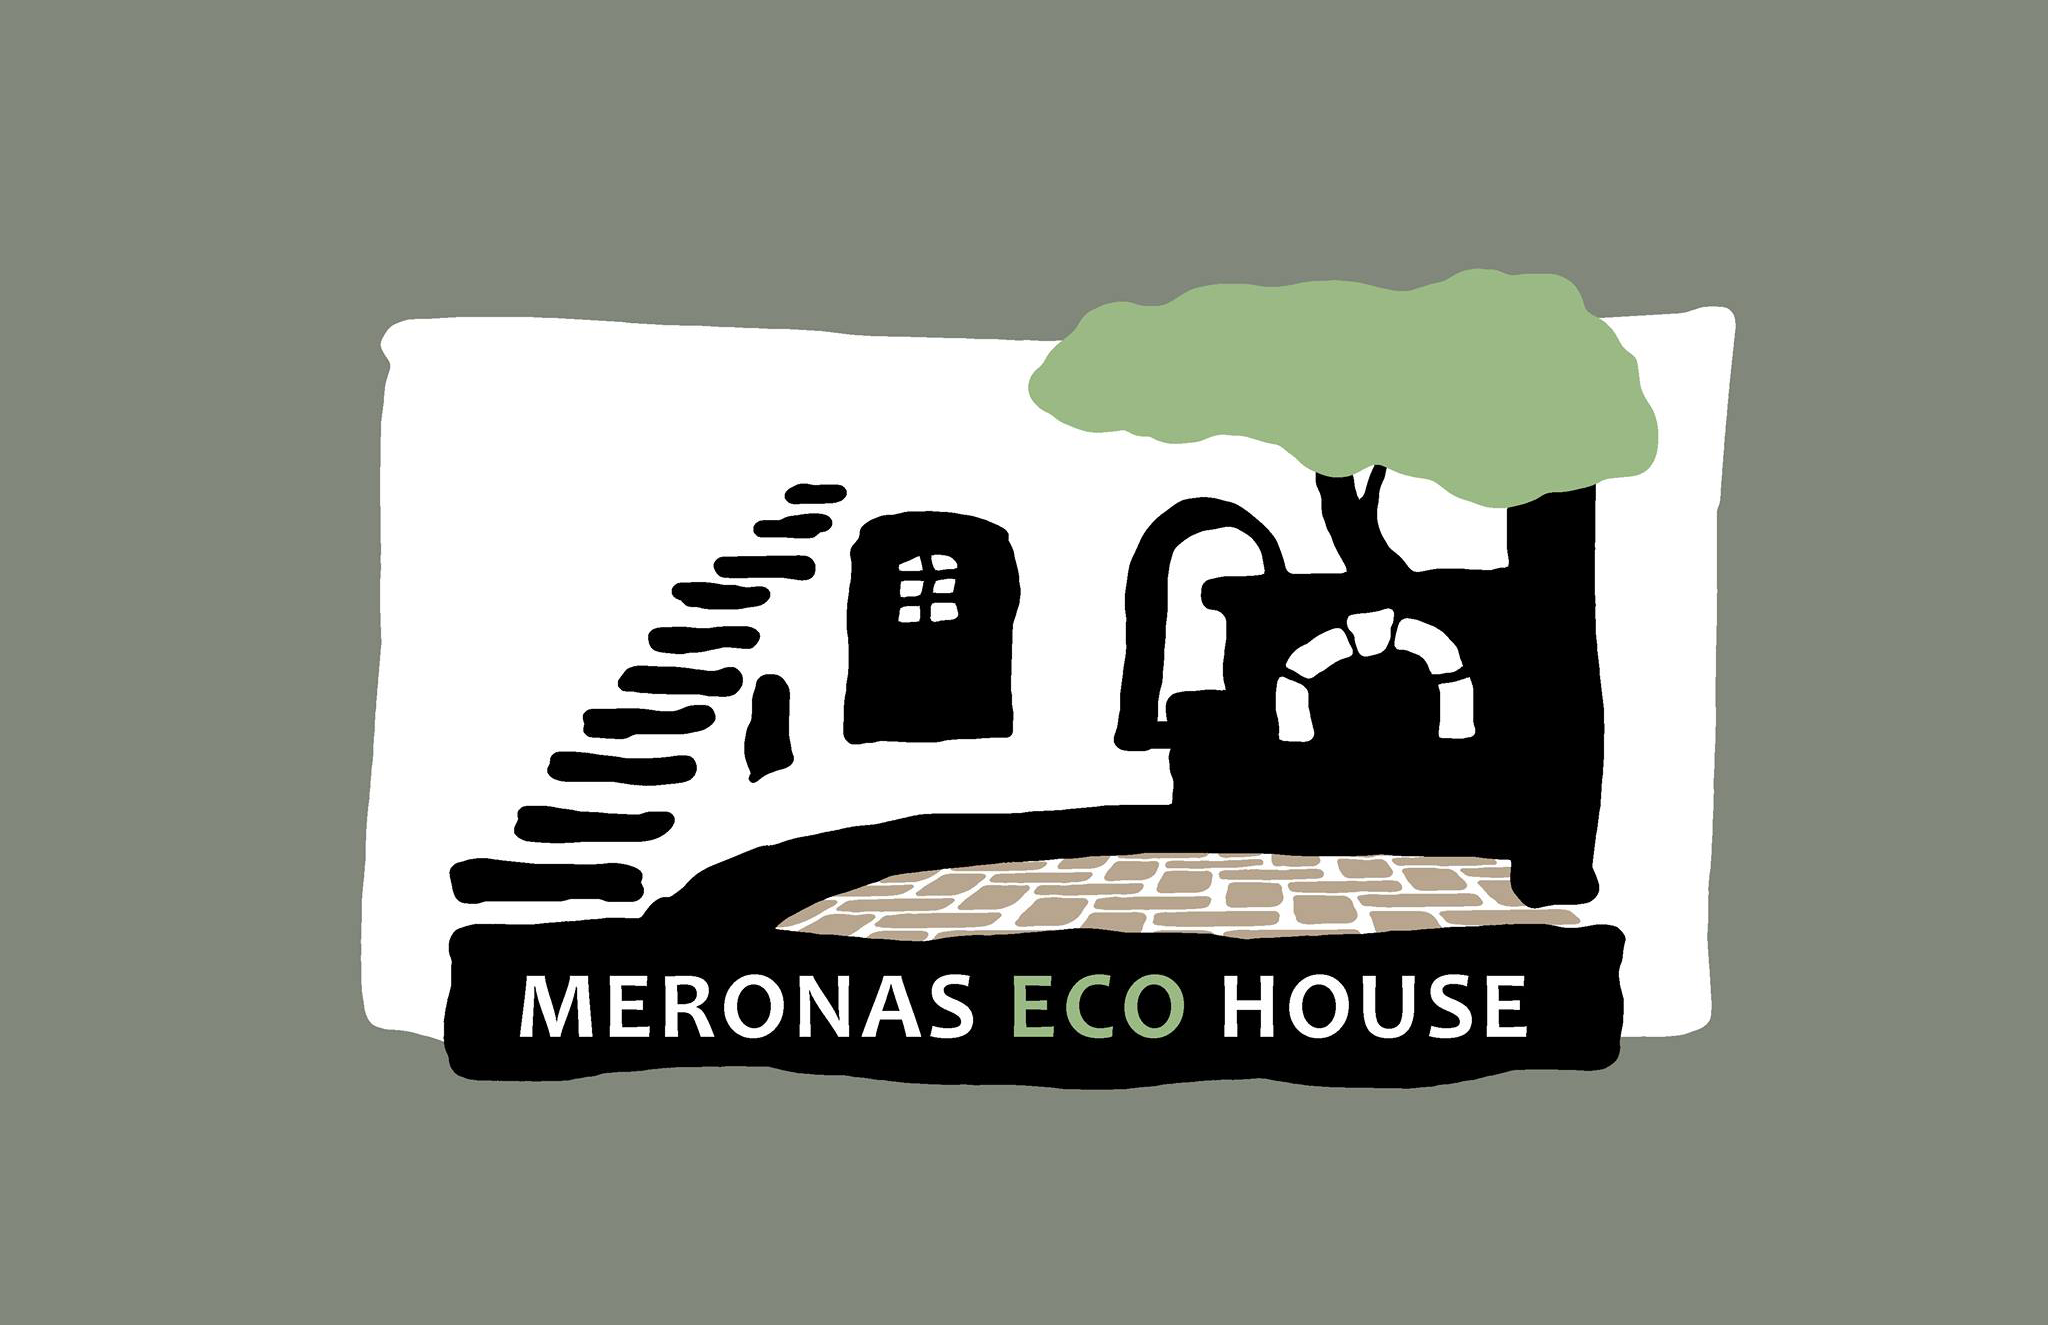 MERONAS ECO HOUSE